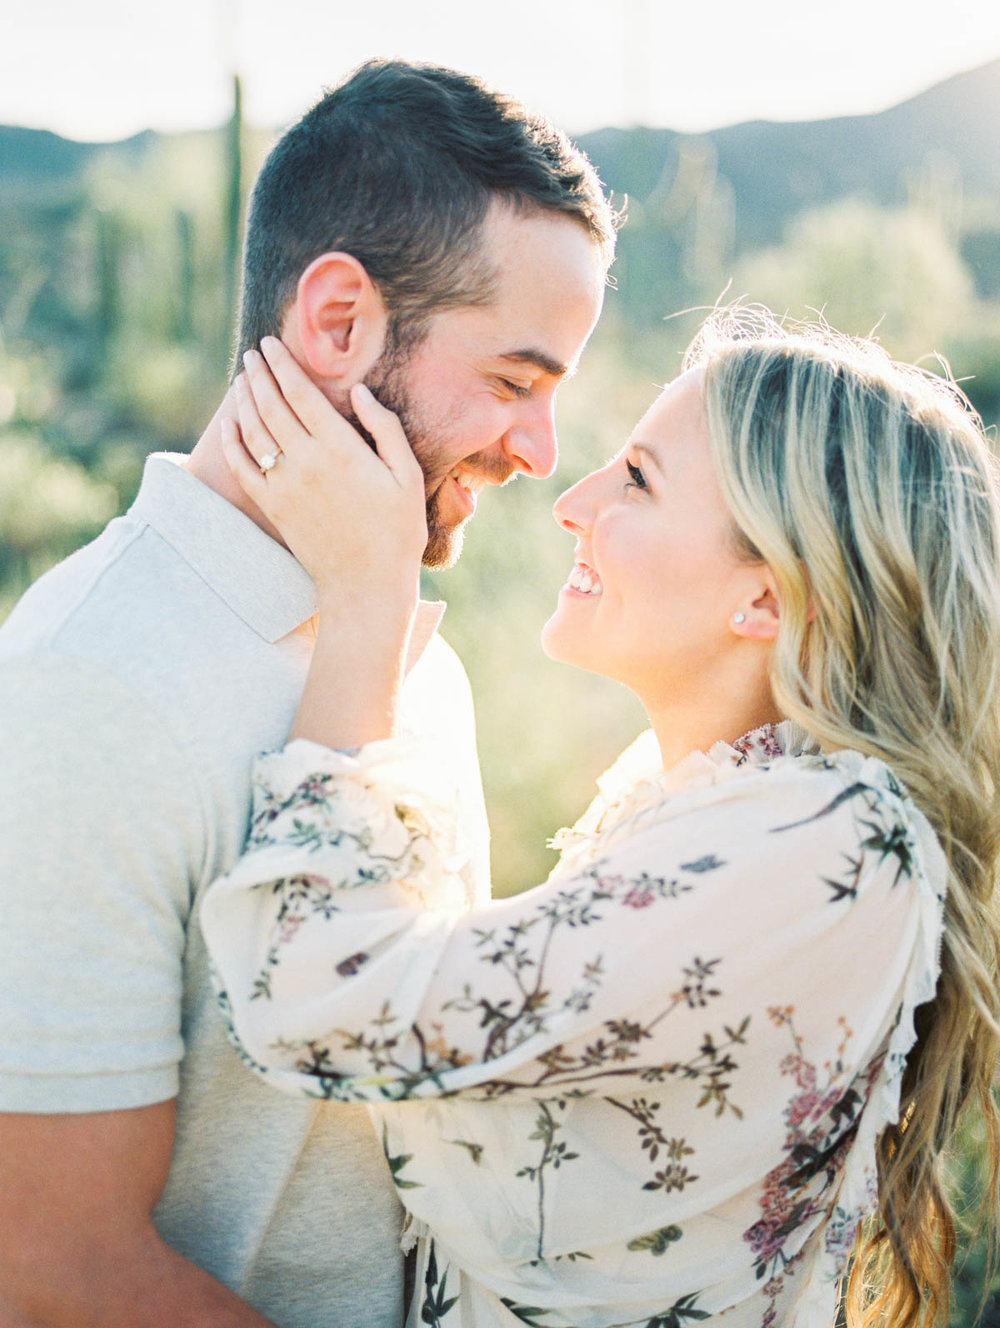 tucson-desert-engagement-session-13.jpg